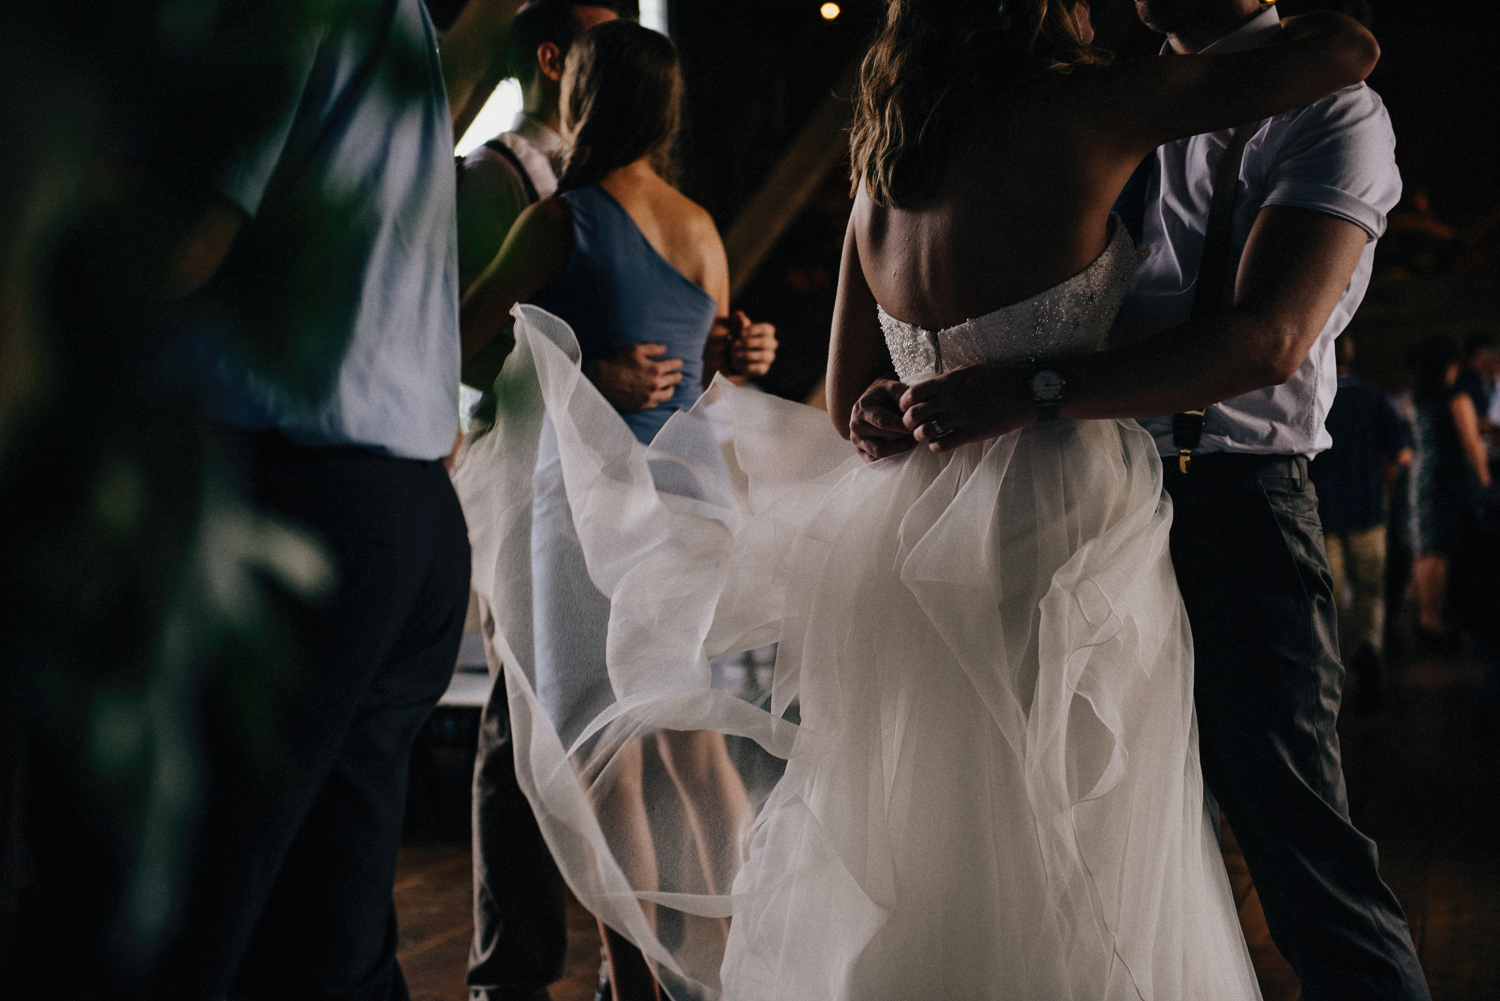 Bride and Groom Dancing | Rustic Indiana Barn Wedding Photography